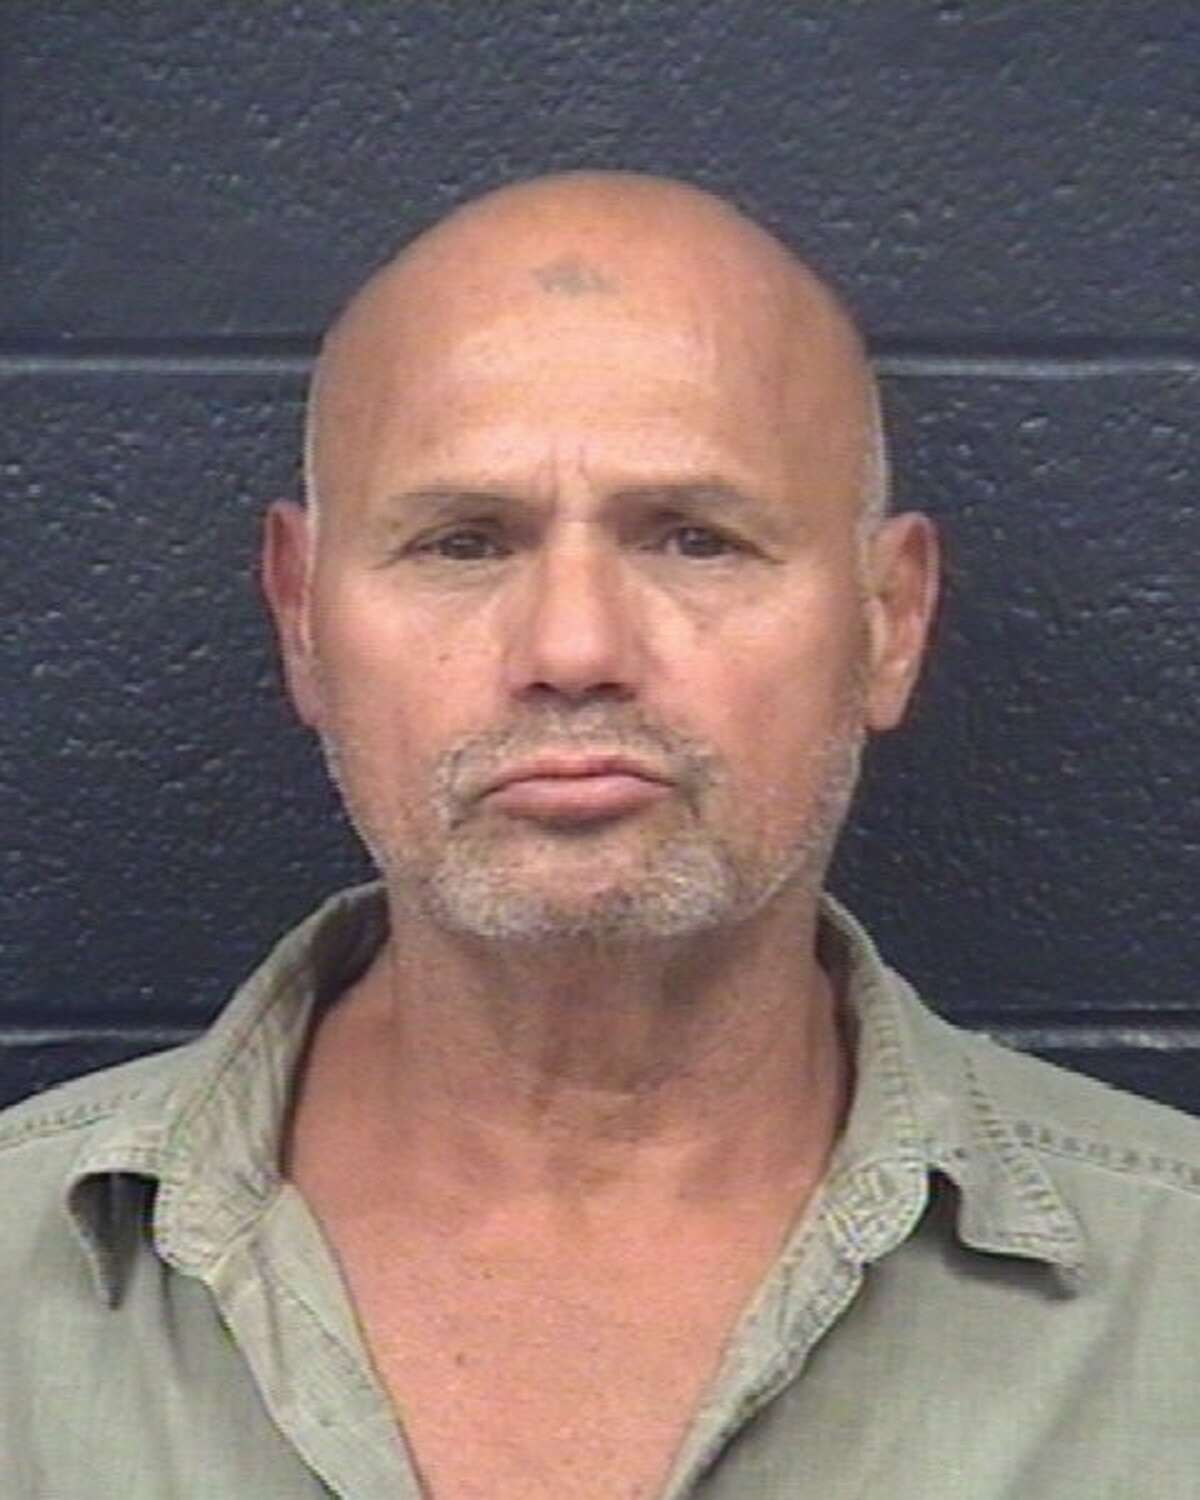 Ruben Plata, 62, was arrested and served with the parole violation warrant in relation to a murder case.